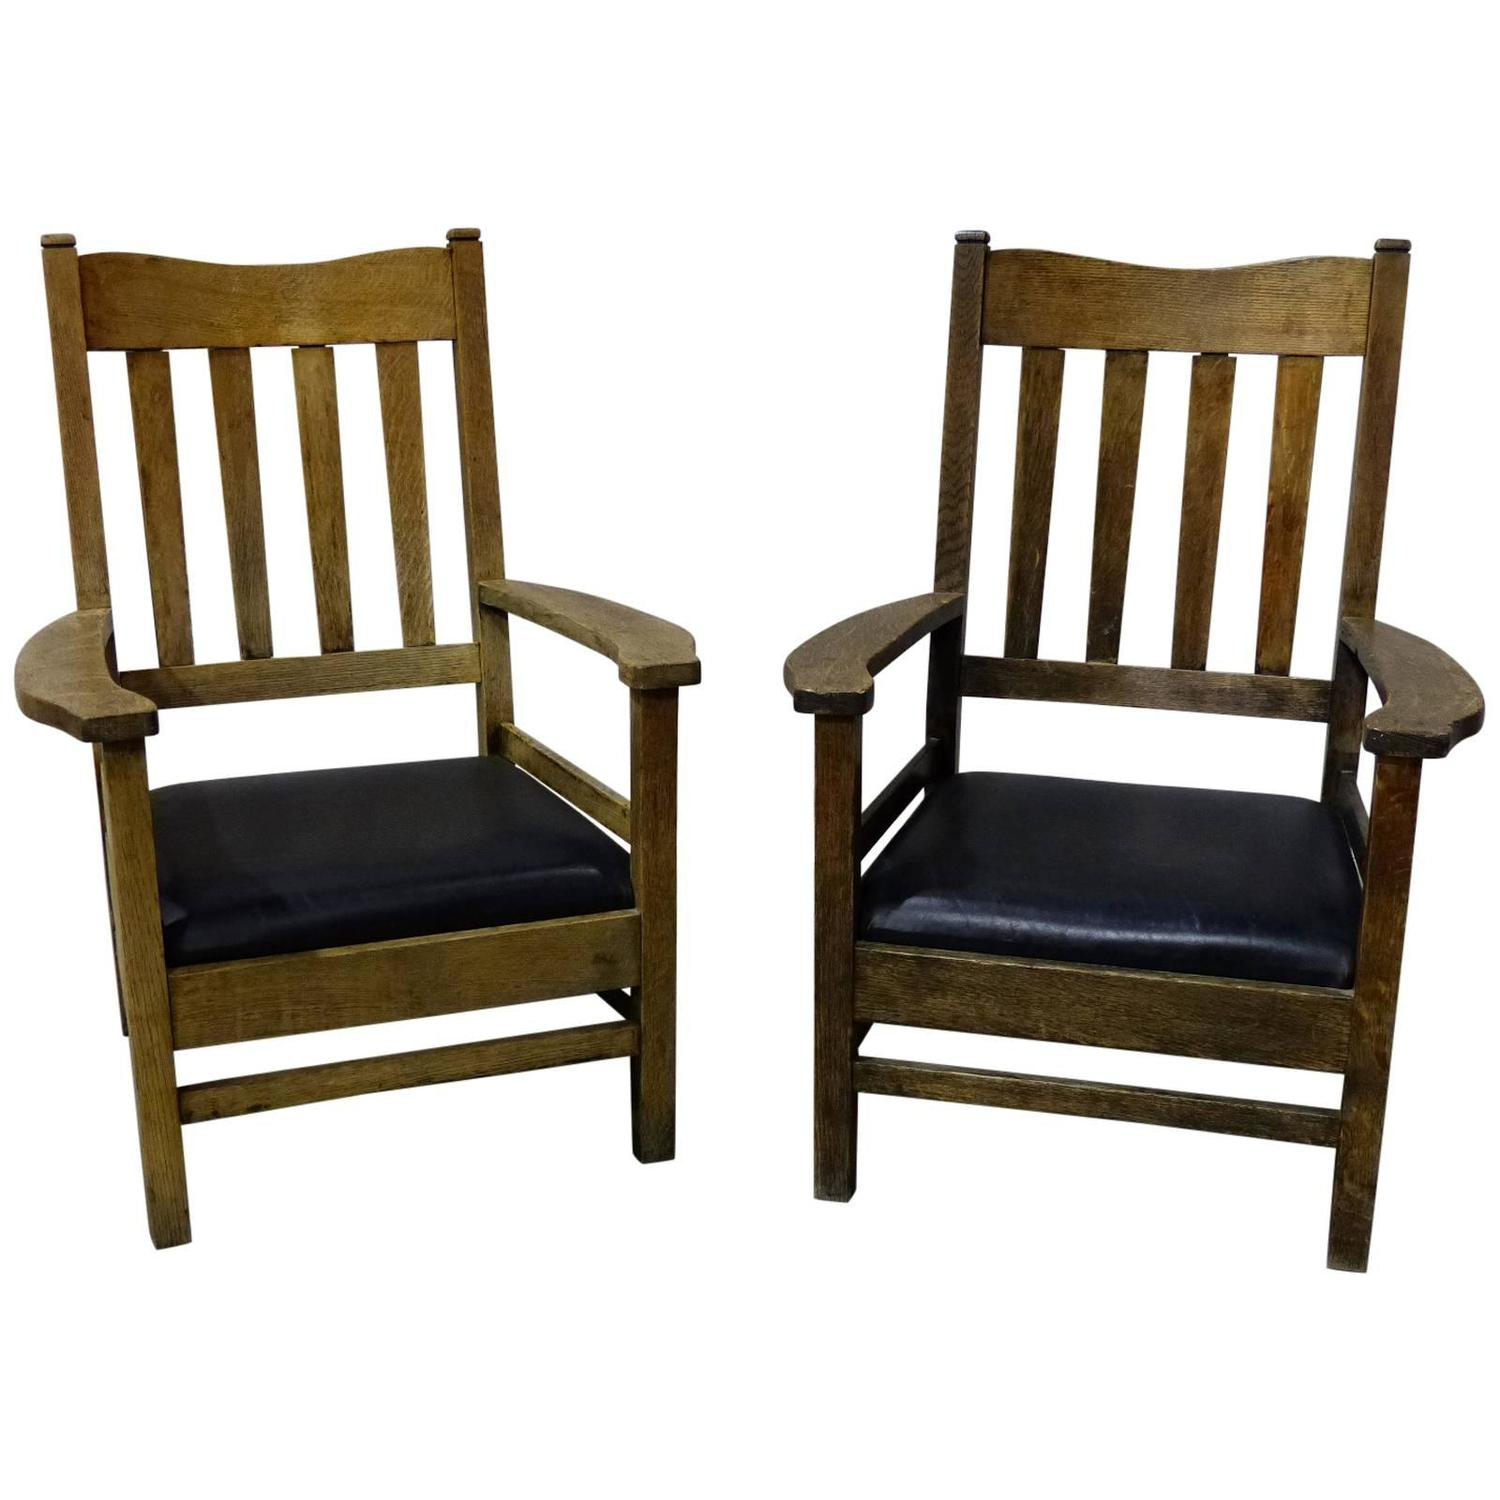 Mission Style Chairs 1920 Large Lodge Craftsman Style Lounge Chairs For Sale At